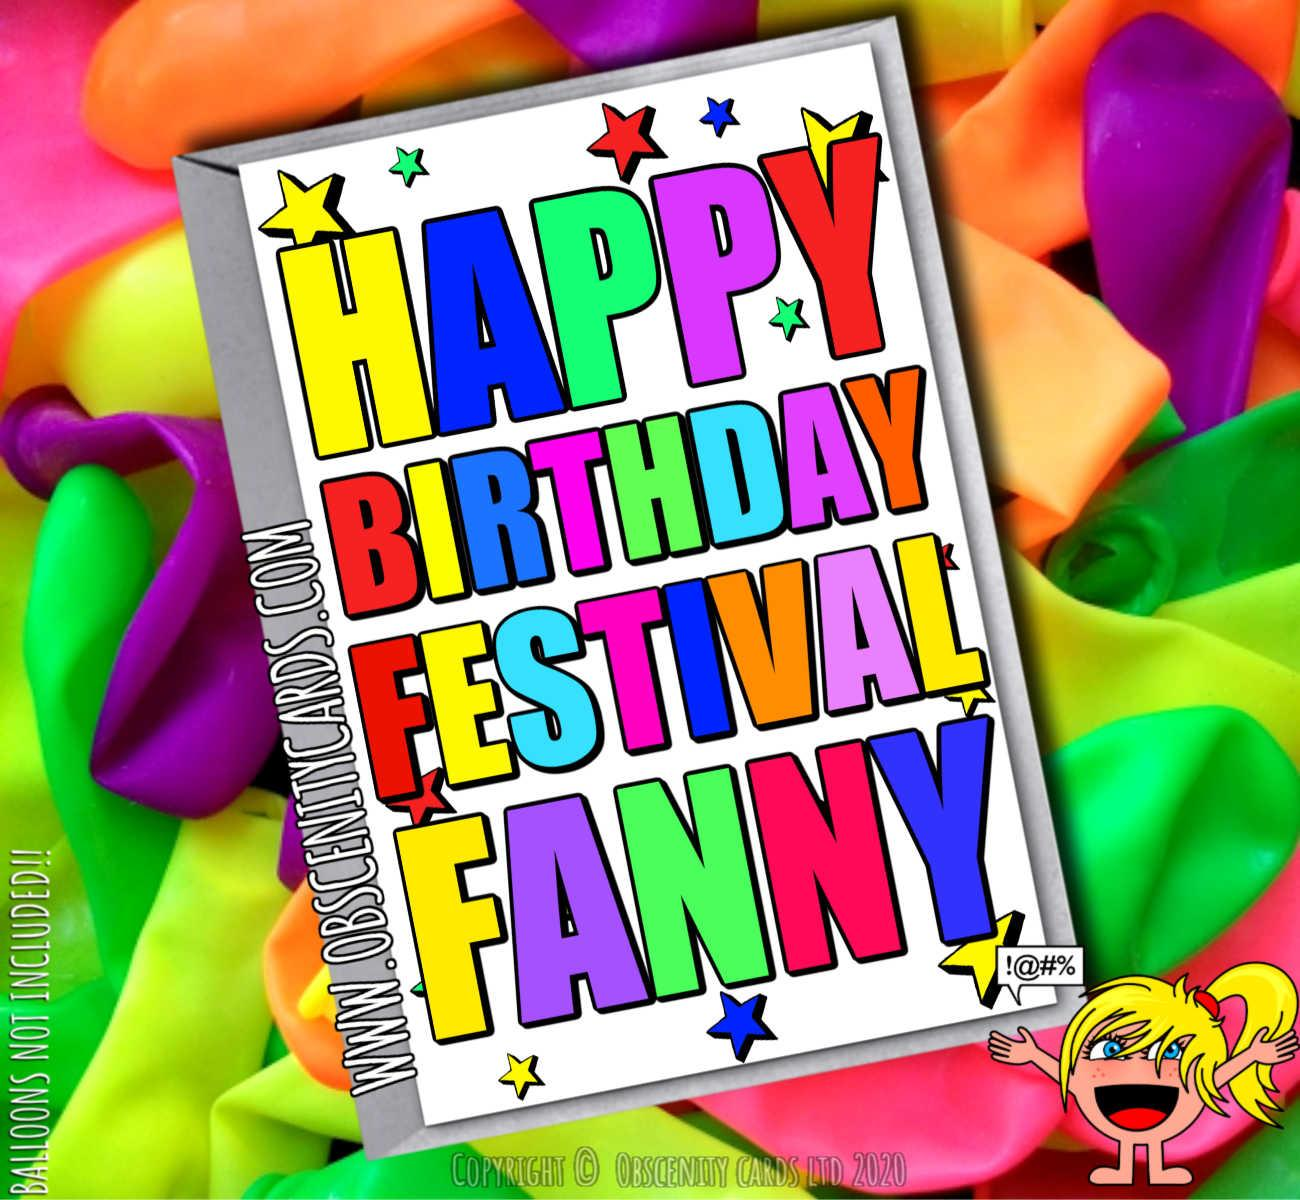 HAPPY BIRTHDAY FESTIVAL FANNY FUNNY CARD